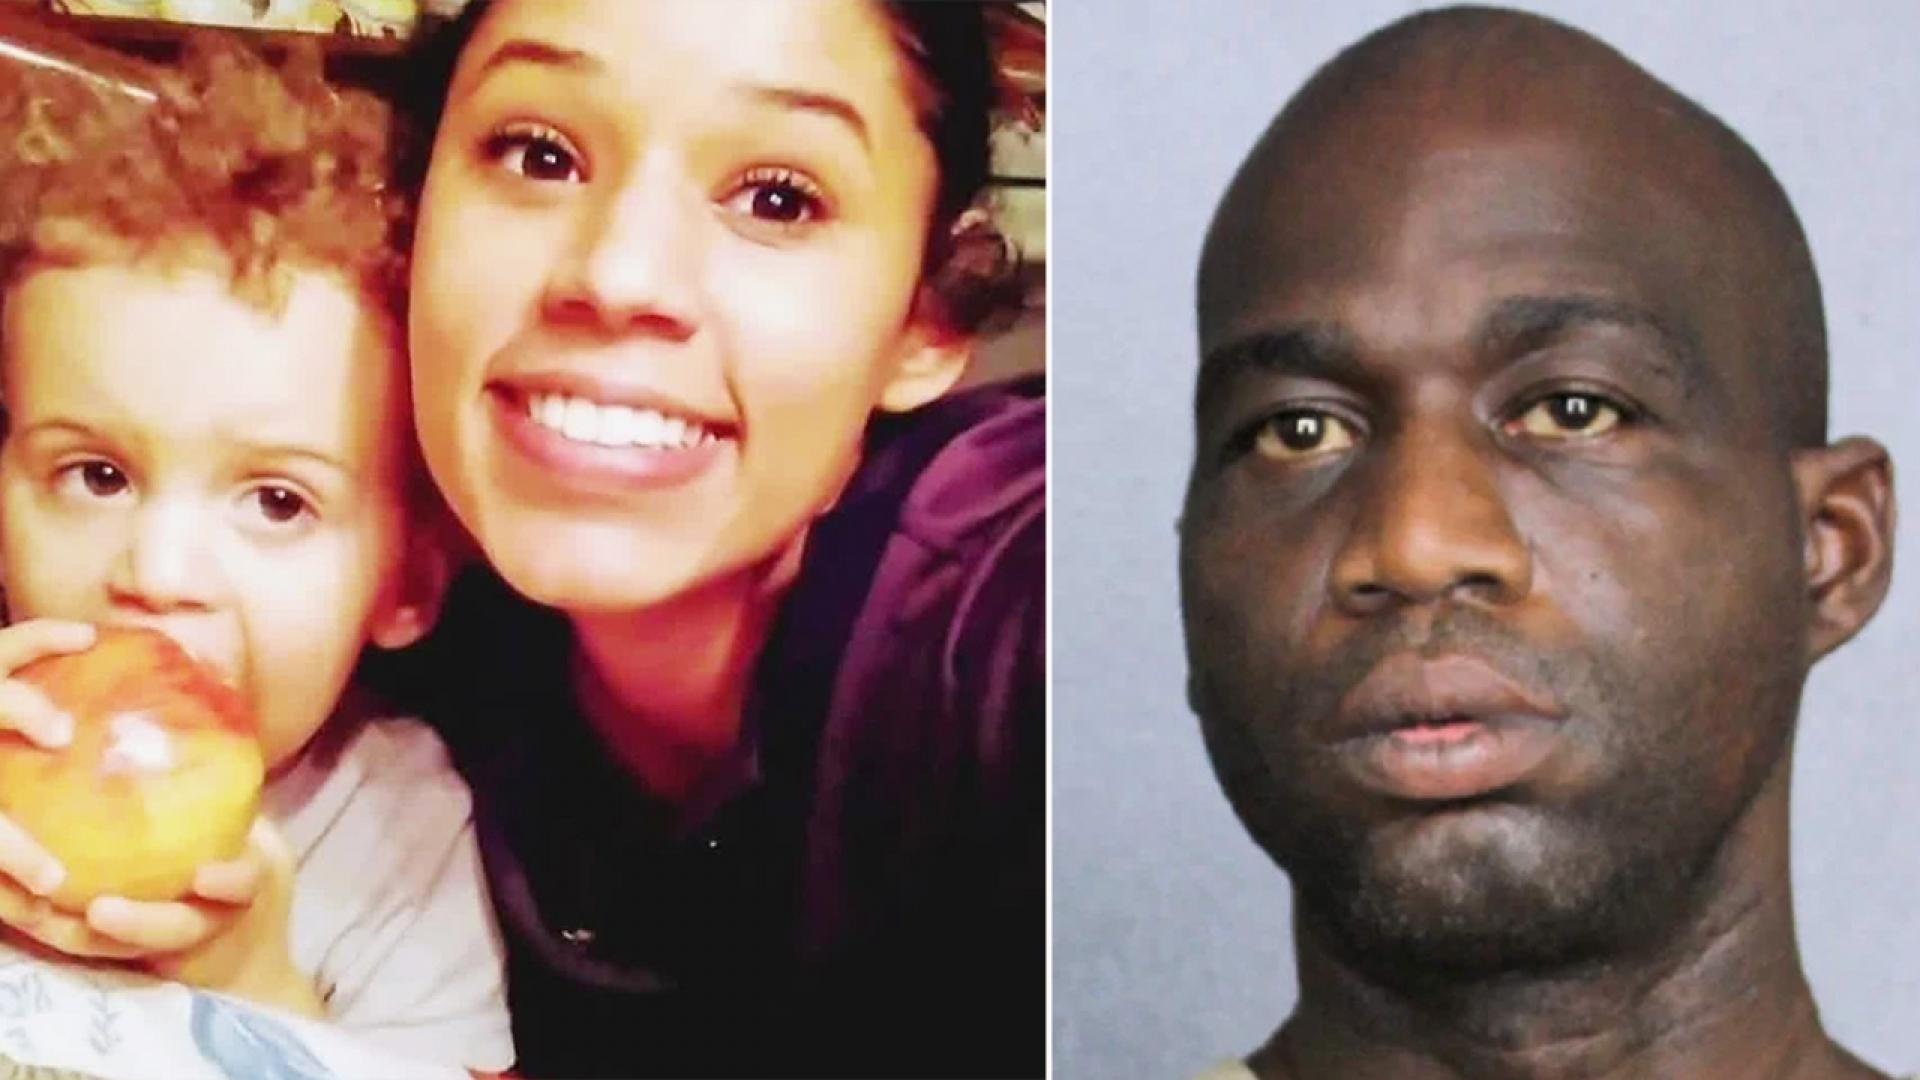 Shanon Demar Ryan, right, has been charged in connection with the kidnapping of Leila Cavett, left.